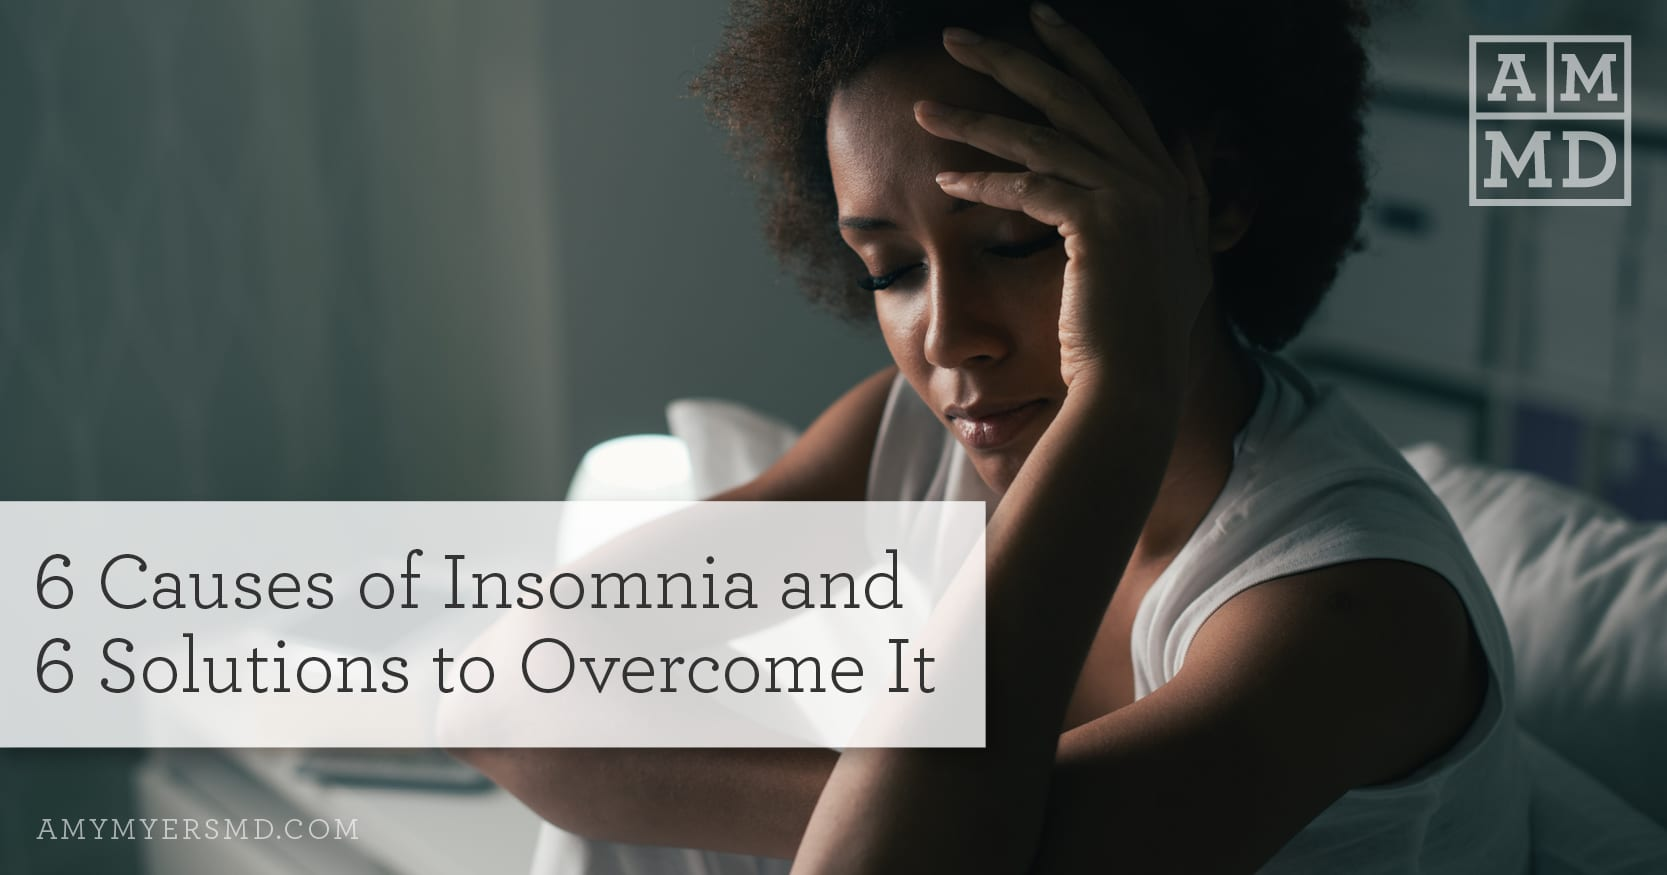 6 Causes of Insomnia and 6 Natural Tips to Overcome It - Amy